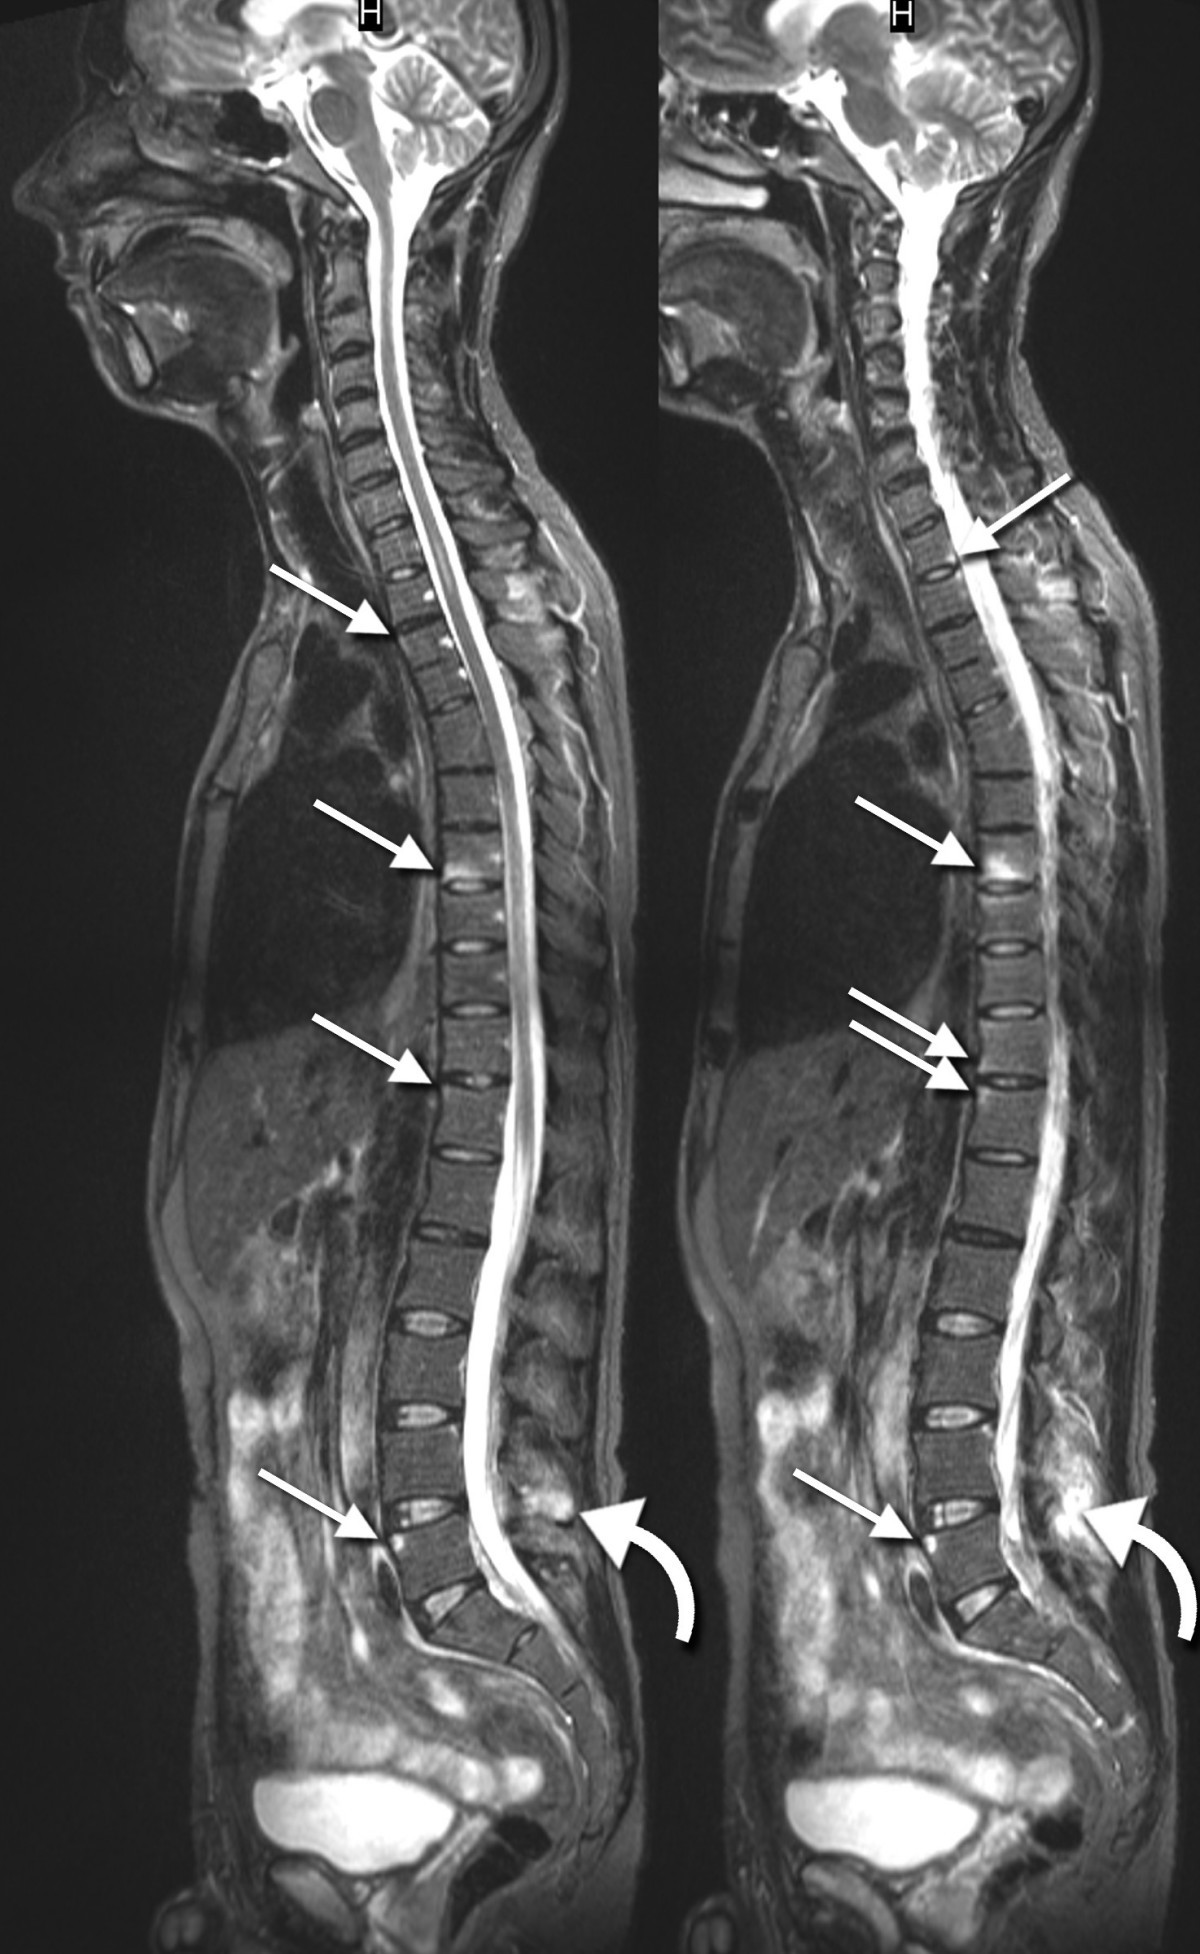 Whole Body Mr Imaging In Ankylosing Spondylitis A